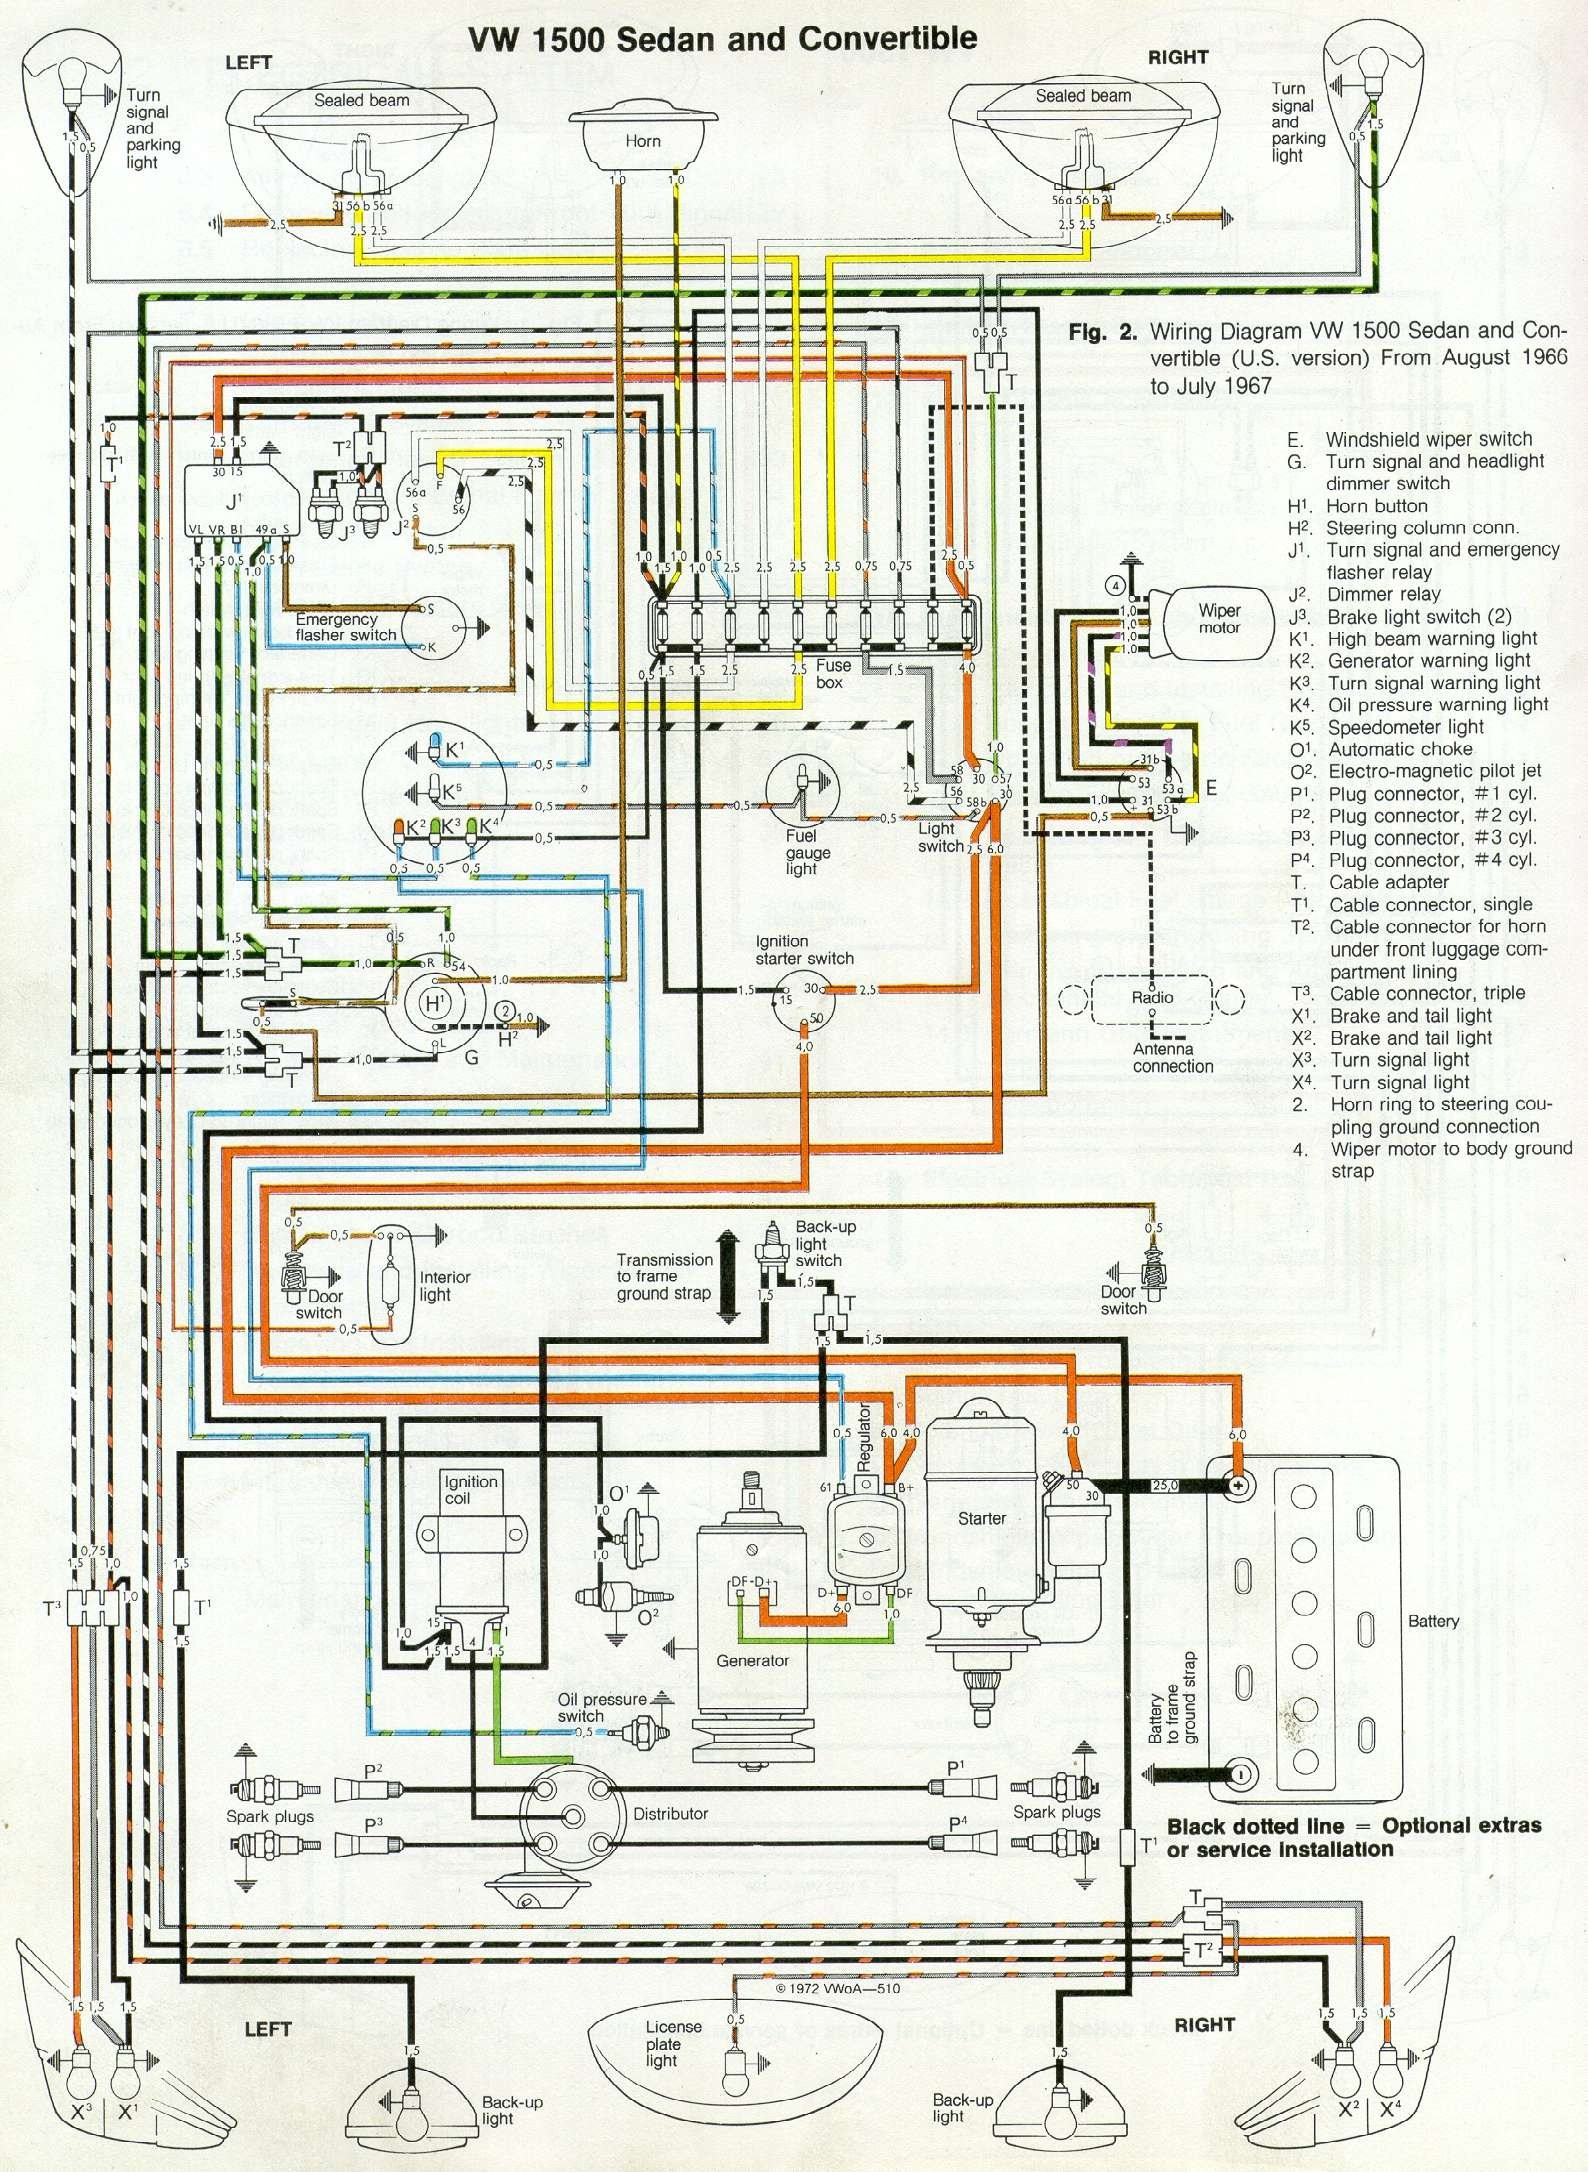 VW Beetle Wiring Digram 67 beetle wiring diagram u s version 1967 vw beetle vw beetle wiring diagram at cita.asia